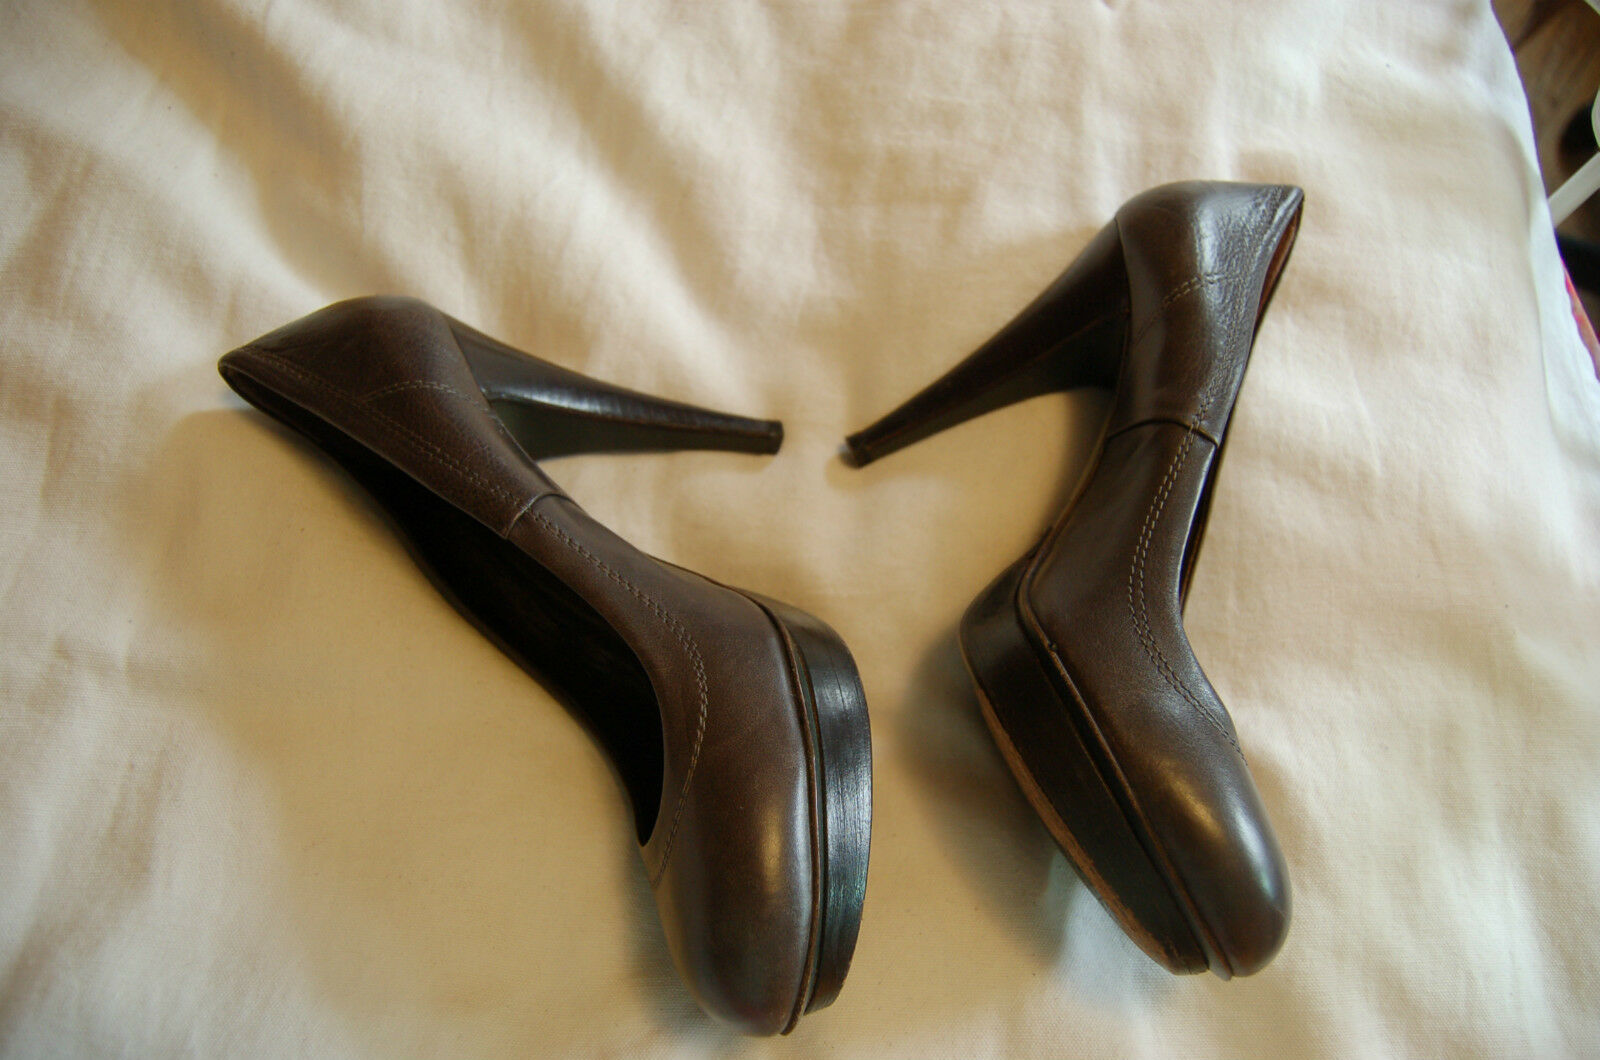 Obeline Dark Green Leather Heels Heels Heels Platform shoes Size39 Made in   Excellent  5cd795